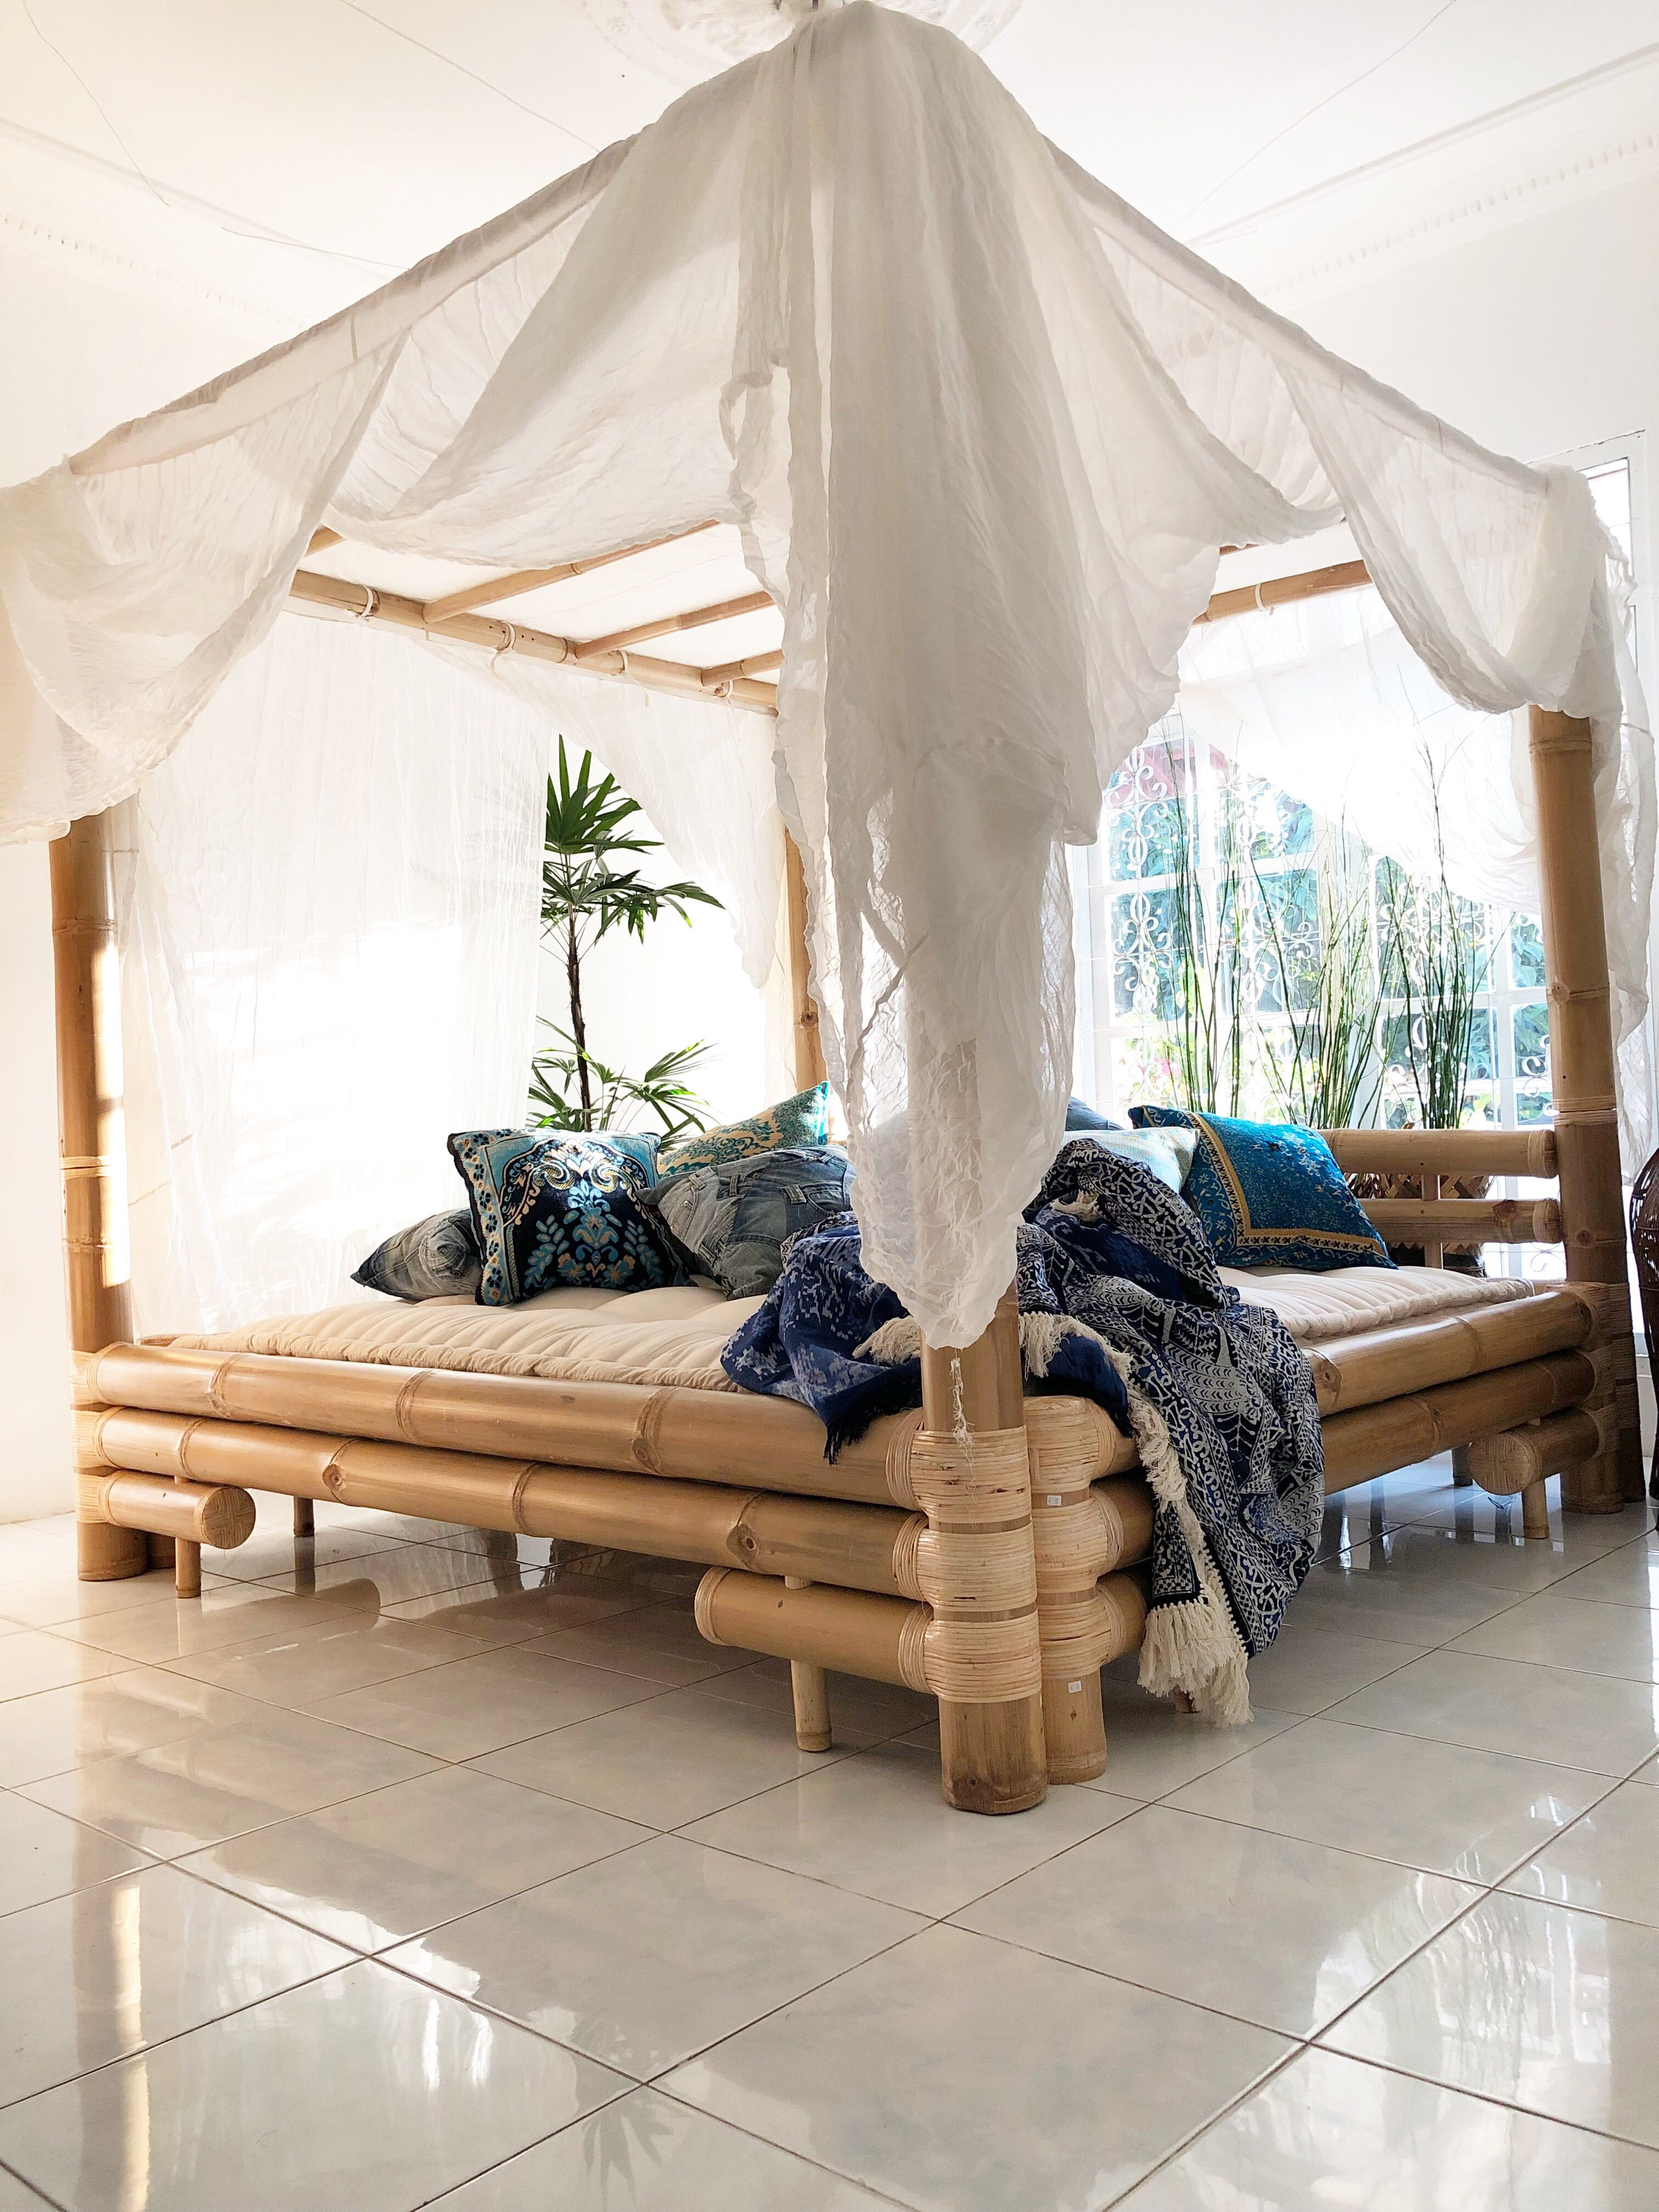 King Size Bamboo Canopy Bed Bamboo Canopybed Rattan Wicker